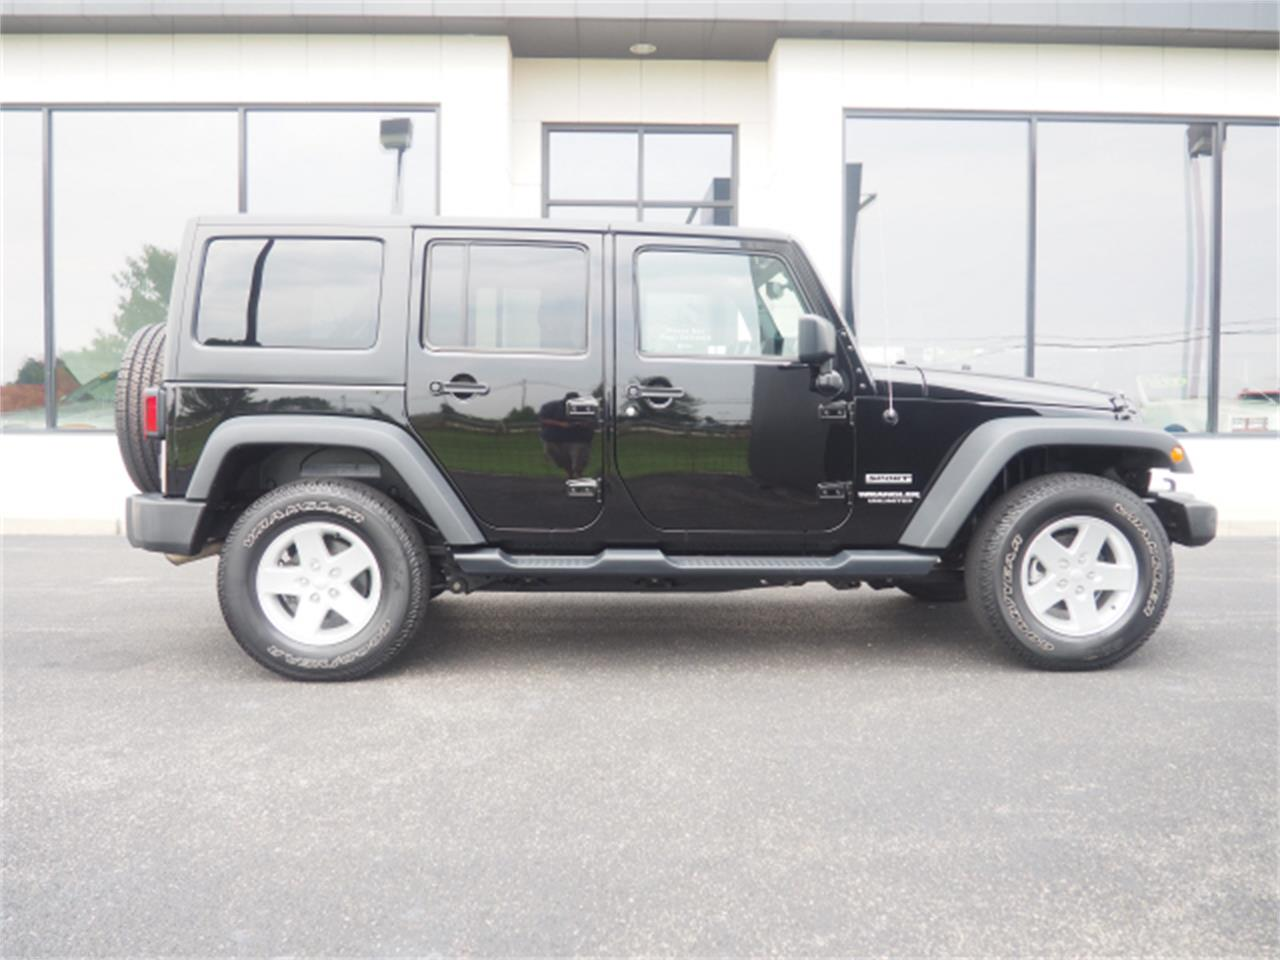 Large Picture of 2015 Wrangler - $27,999.00 Offered by Nelson Automotive, Ltd. - PPKT